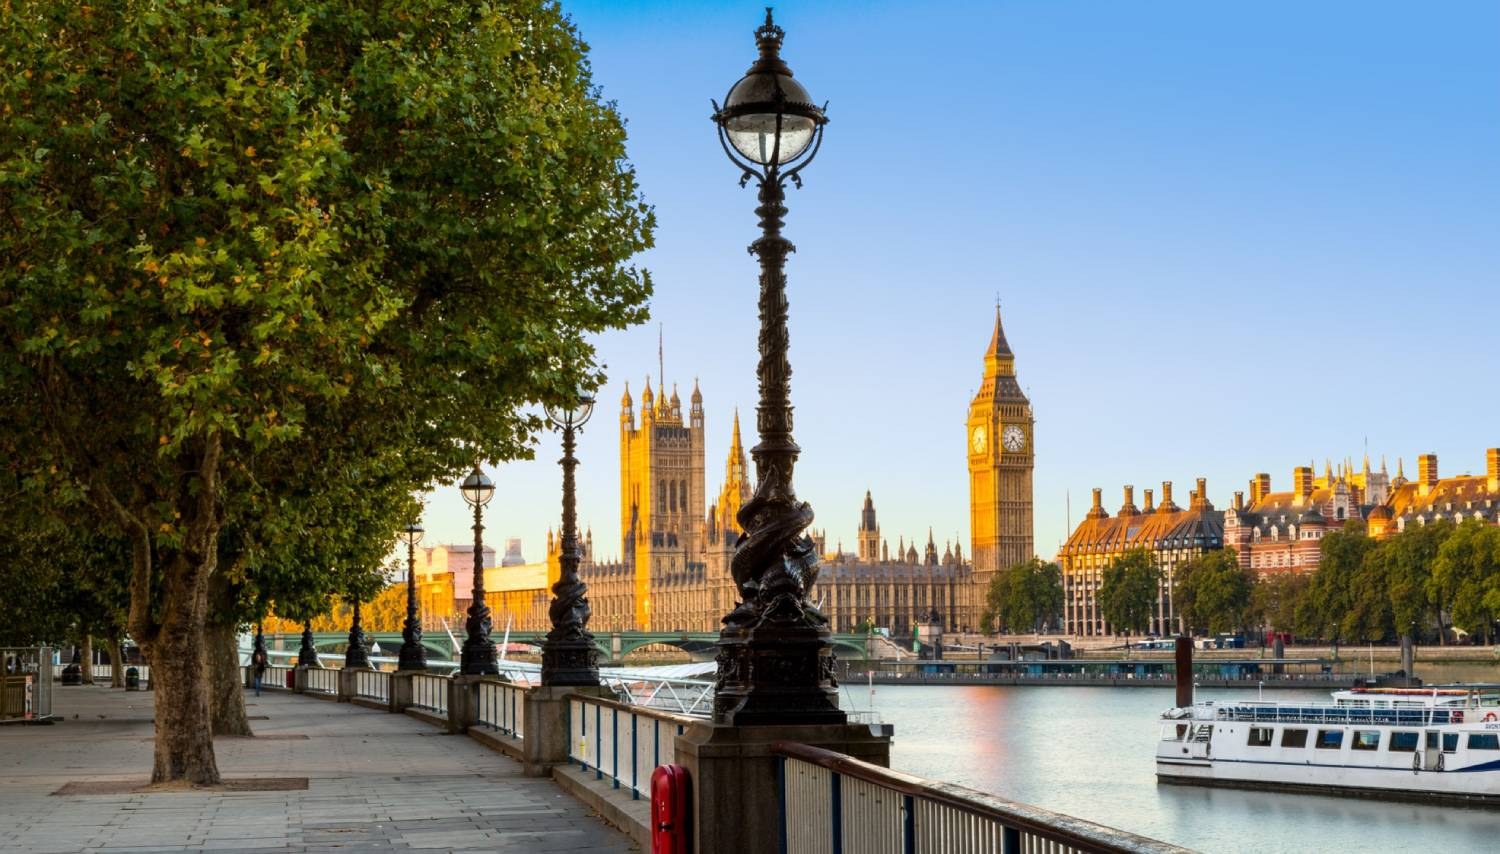 South Bank - Things To Do In London